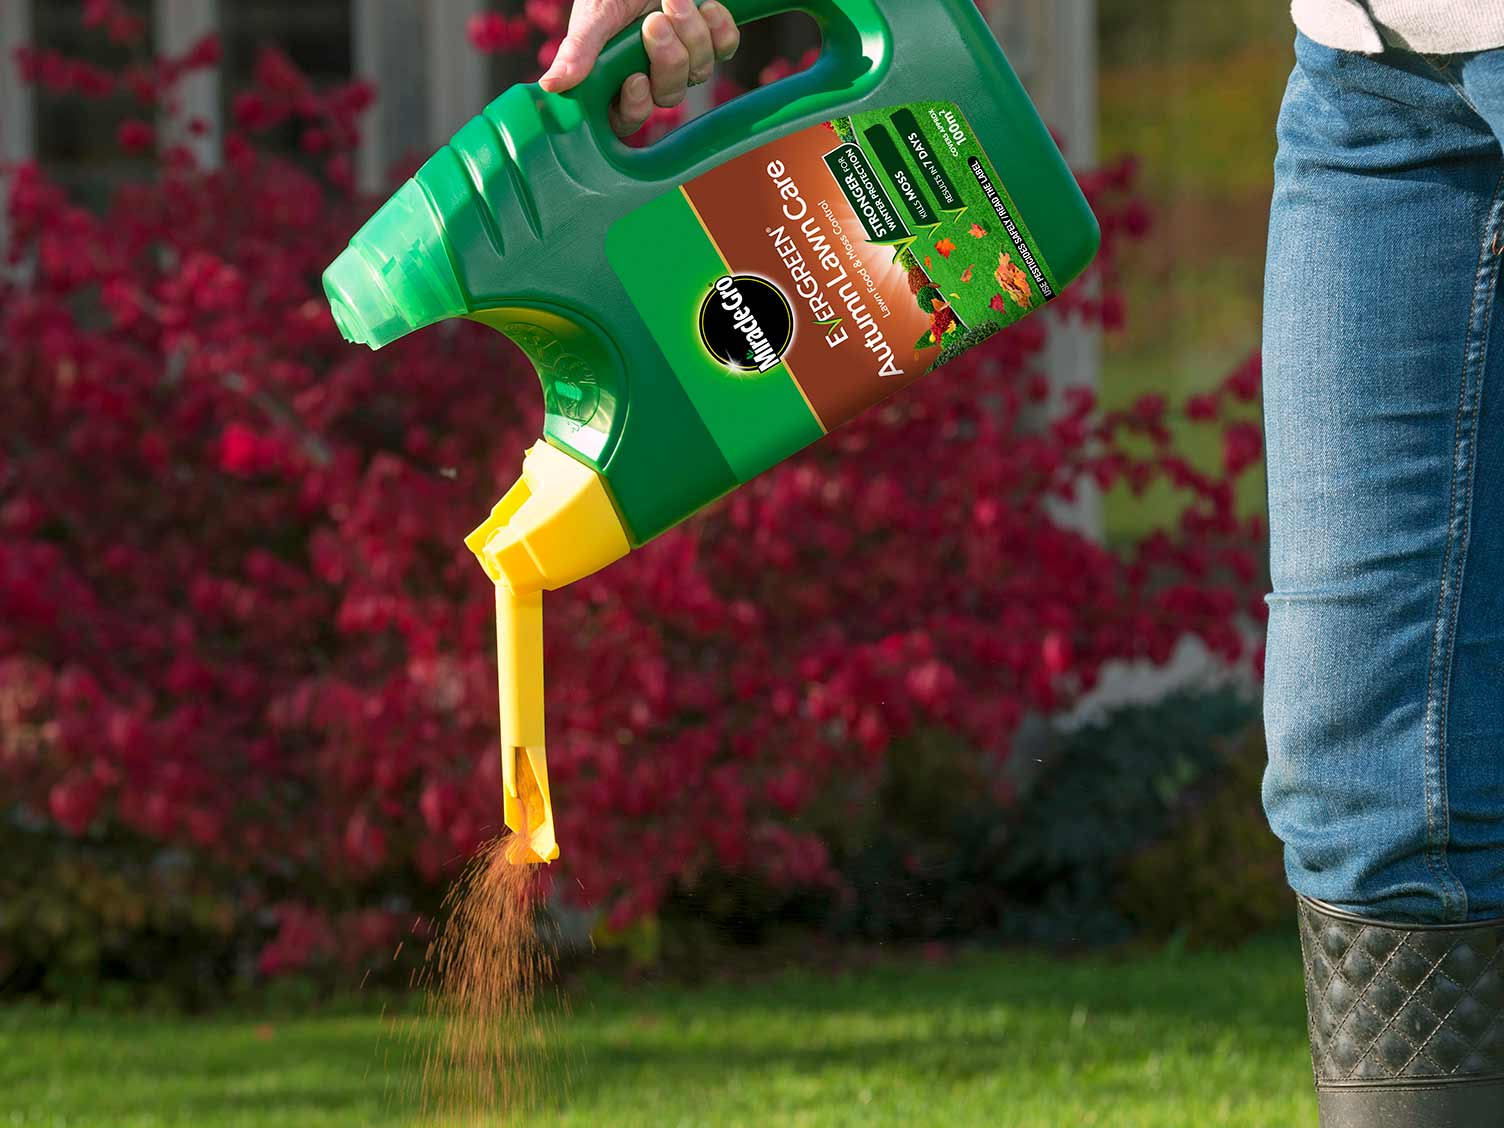 Miracle-Gro EverGreen Autumn Lawn Care spreader in use